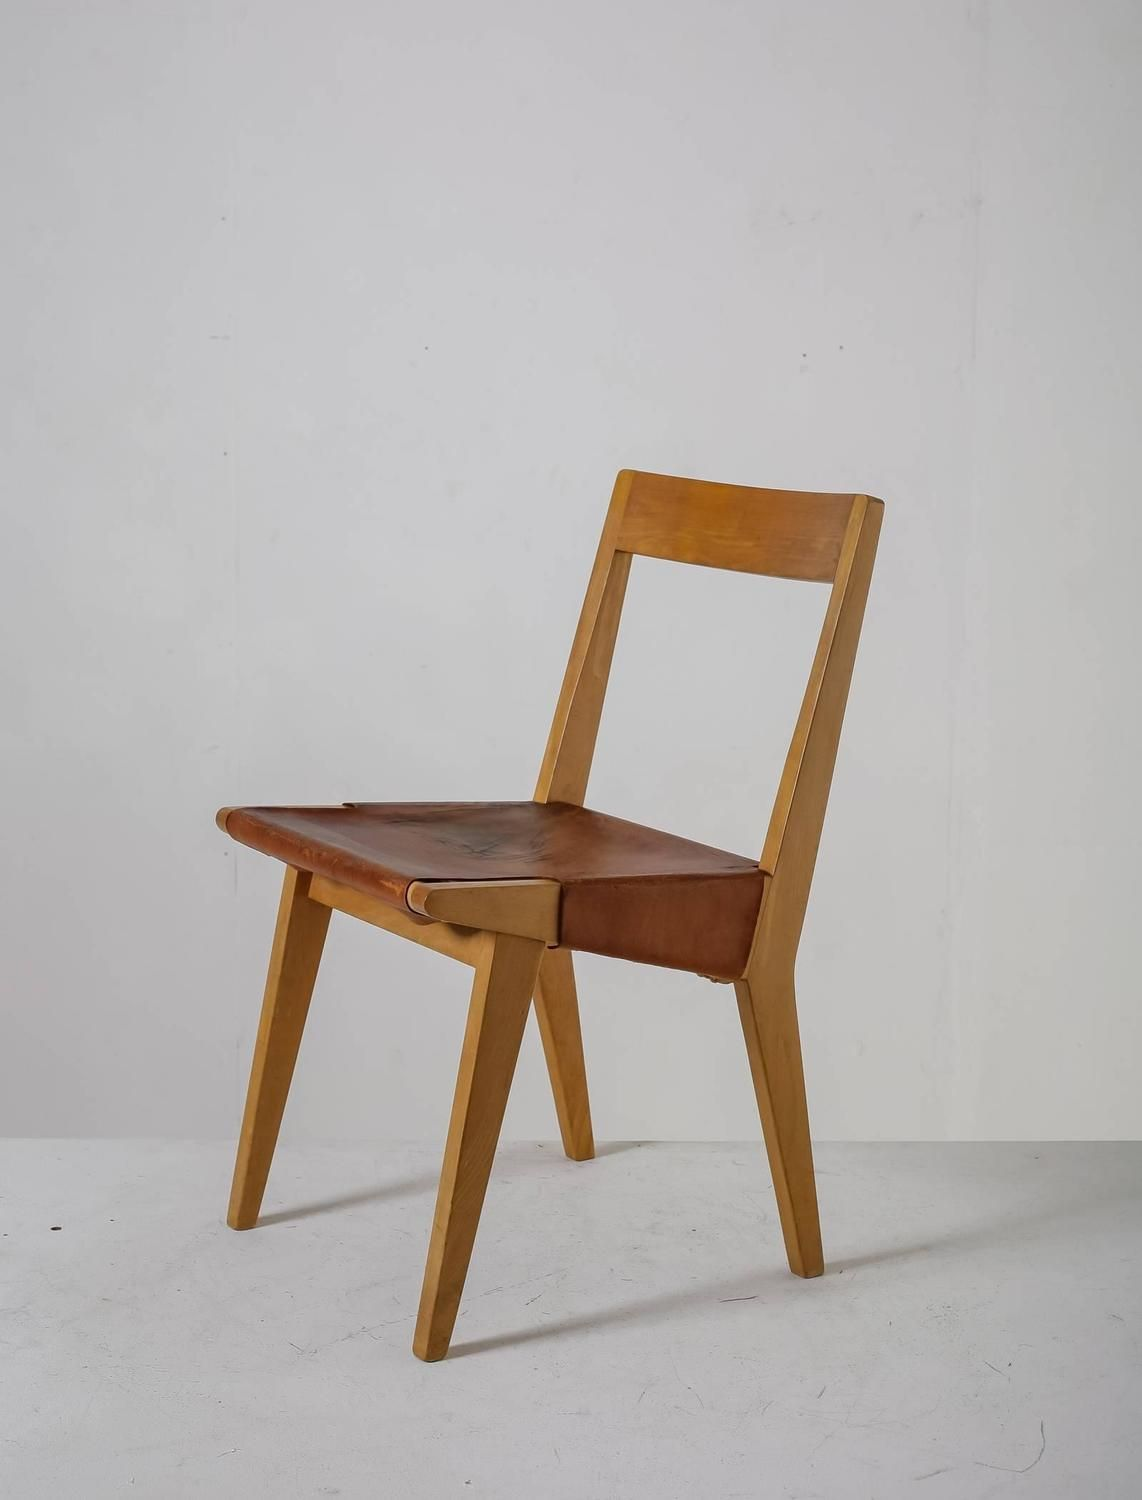 Jens Risom; Series 600 Chair For Knoll Associates, 1940s.